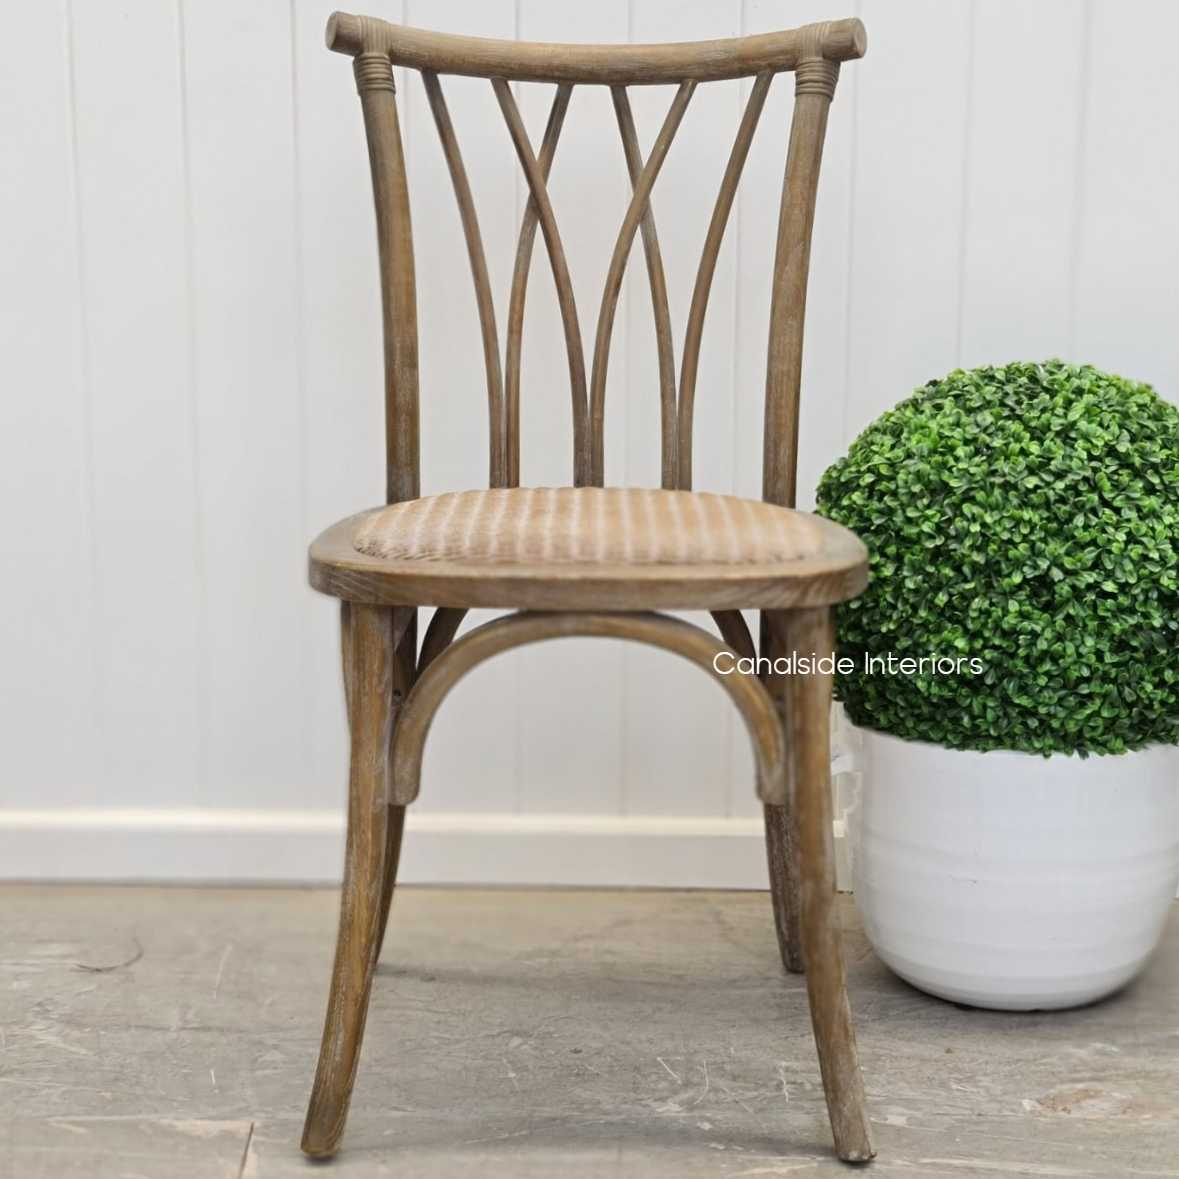 Botanica Chair Weathered Oak  Dining, CHAIRS, CAFE FURNITURE, HAMPTONS Style, PLANTATION Style, CHAIRS Dining, CAFE FURNITURE Stools & Chairs, PLANTATION STYLE